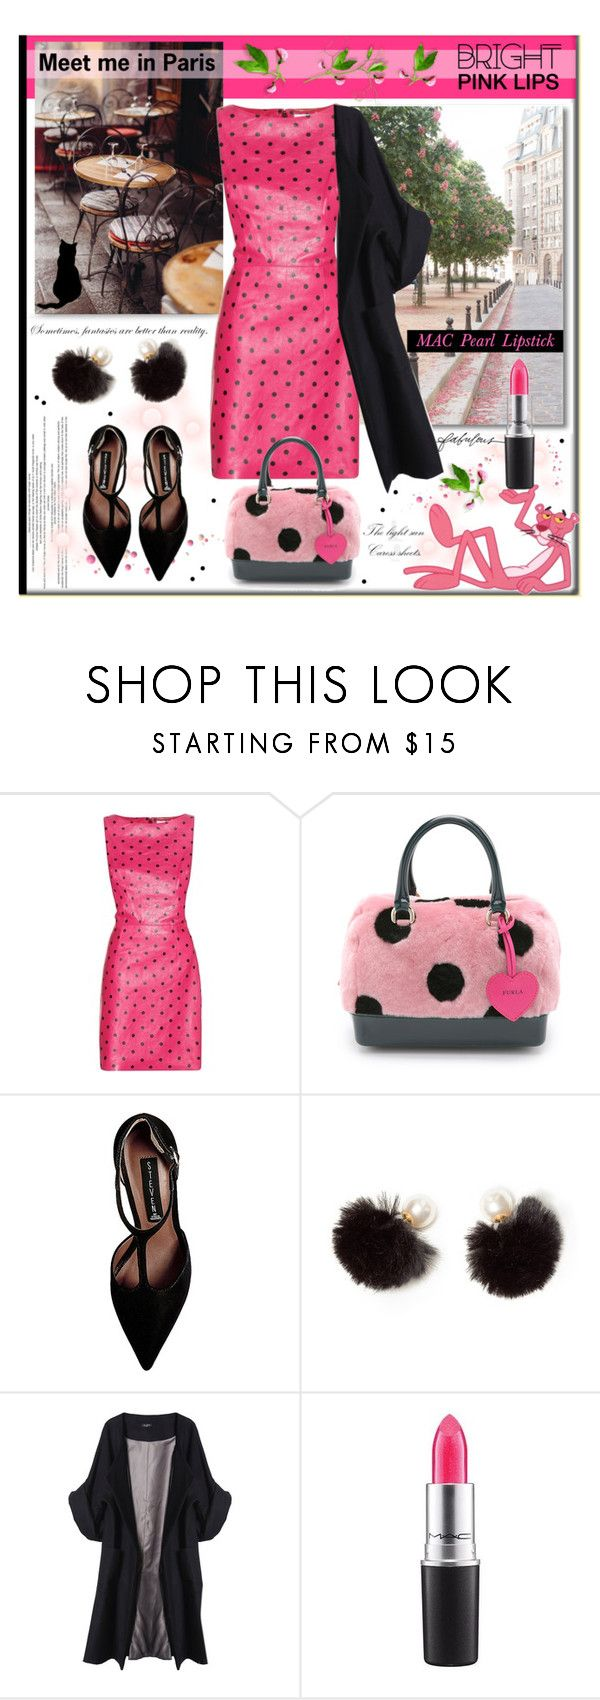 """""""Pink Panther"""" by pumsiks ❤ liked on Polyvore featuring Dauphine, Yves Saint Laurent, Furla, Steve Madden, Stella & Dot, Merci Me London, MAC Cosmetics and pinklips"""